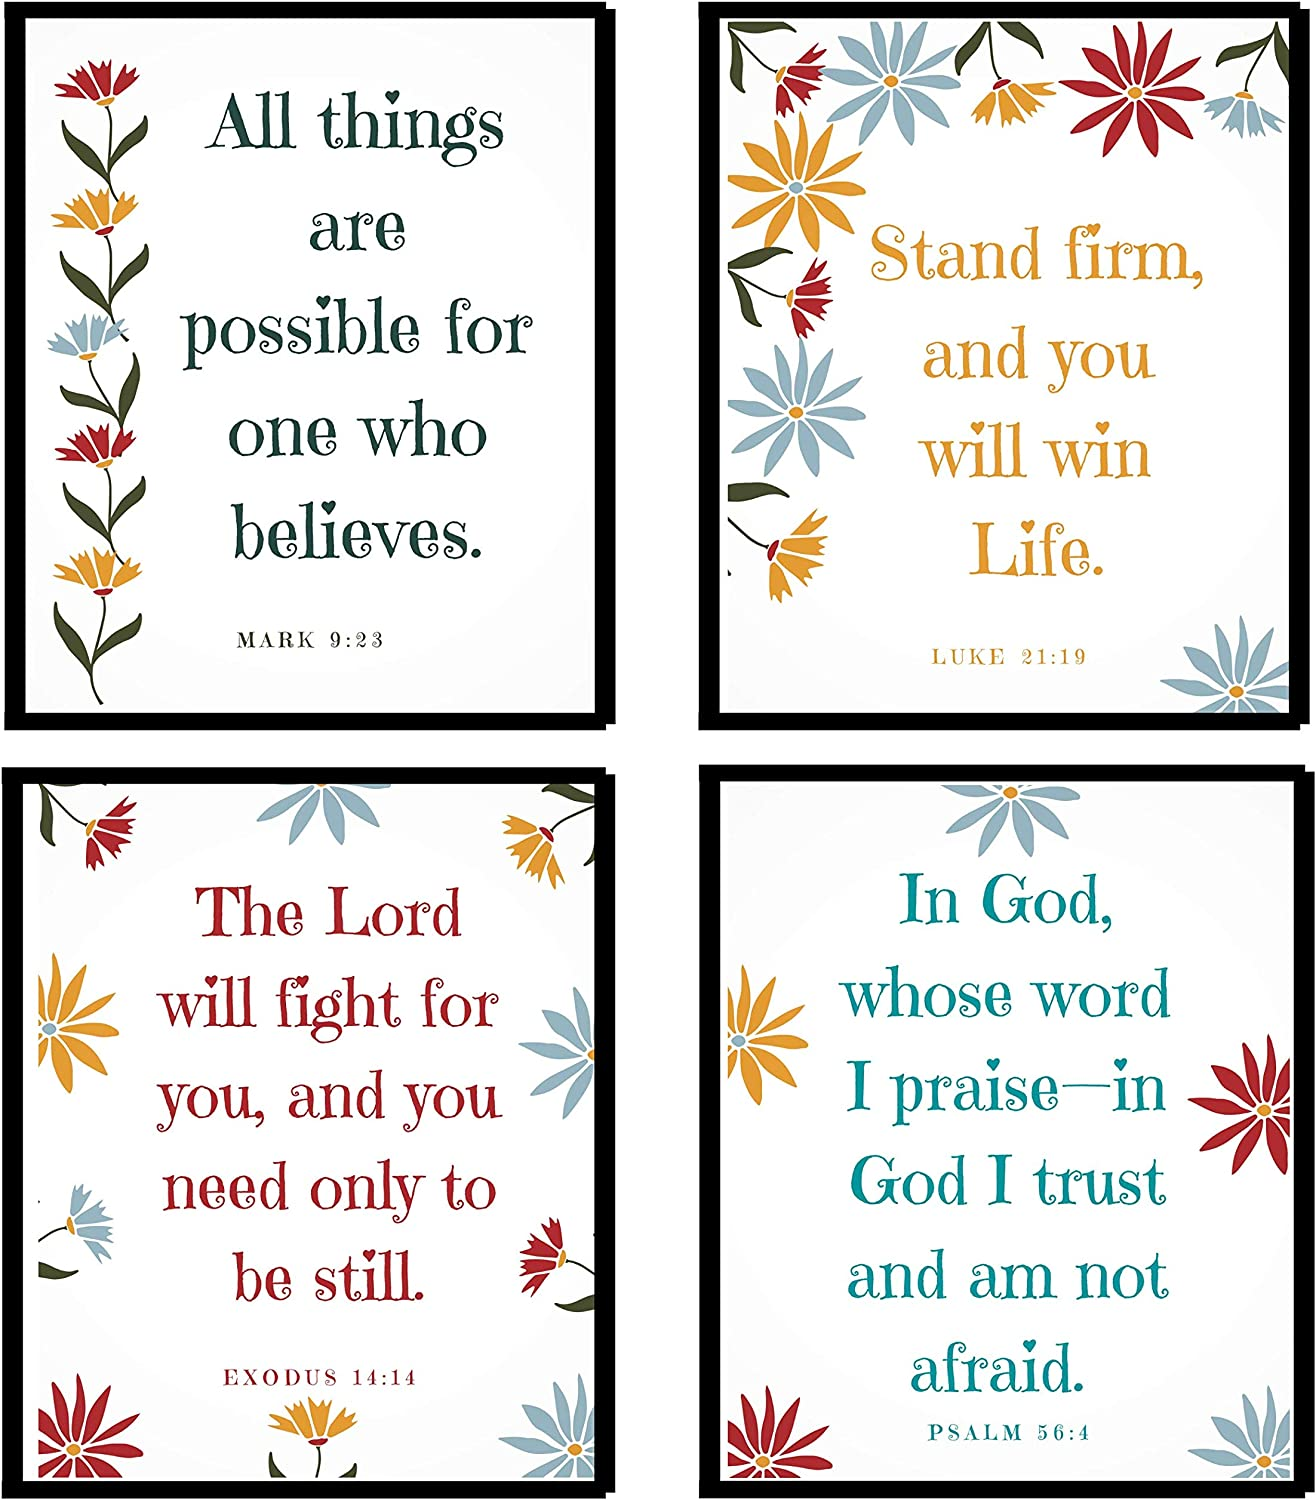 Inspirational Quotes Wall Decor - Set of 4 Prints for Christian Home Decor - Ready to Frame Christian decorations for home - Unique Gift for Women - Bible Verse Wall Art - 8x10 Motivational Wall Art Posters - Religious Scripture Wall Decor - Blessed Wall Decor